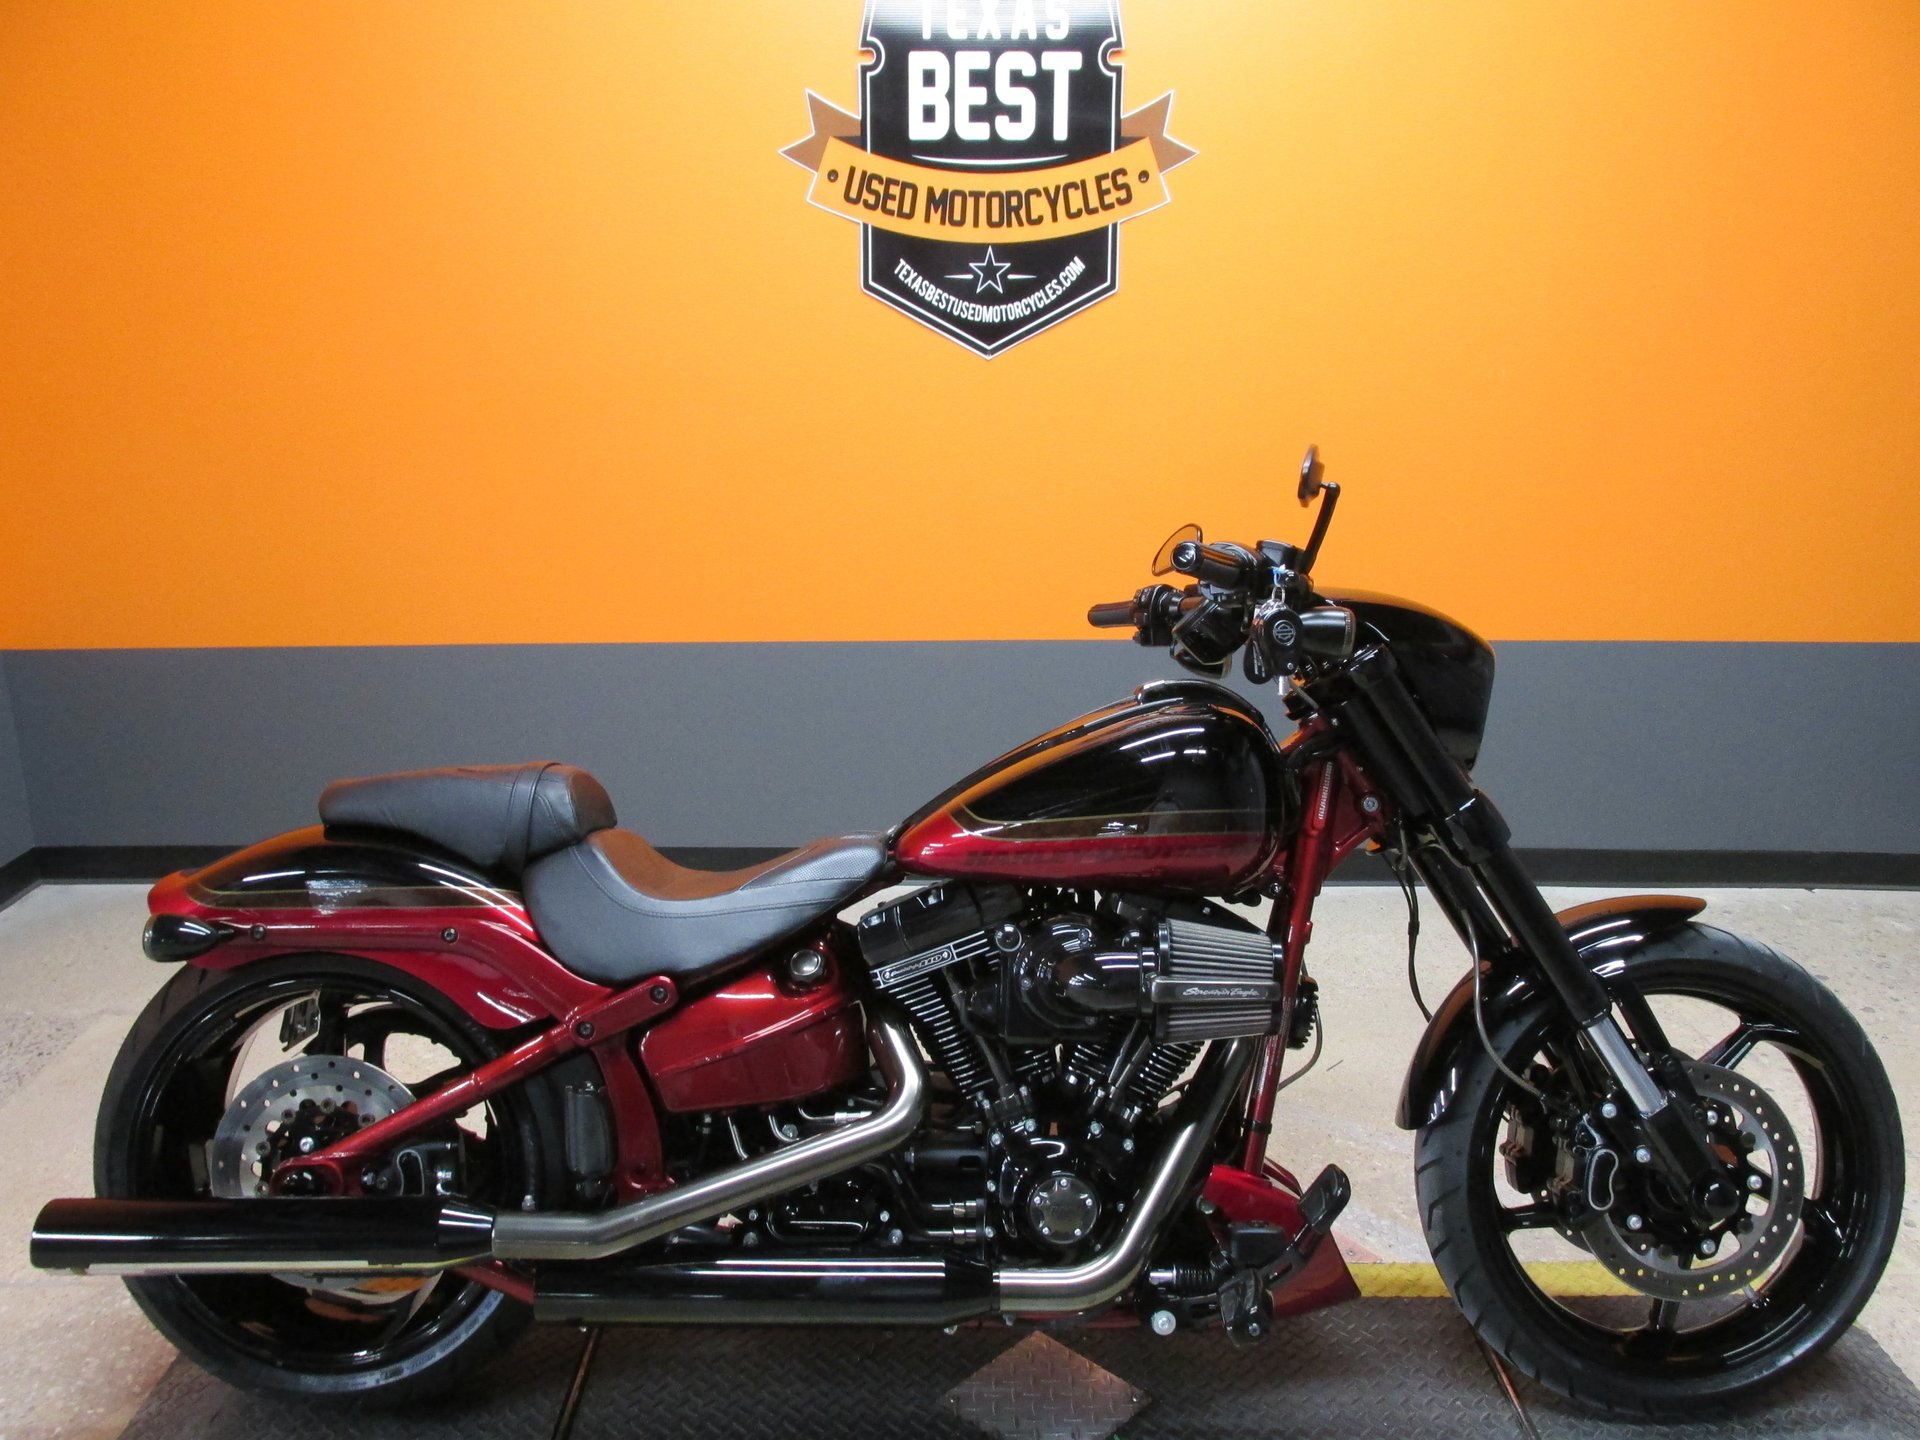 For Sale 2017 Harley-Davidson CVO Softail Pro-street Breakout